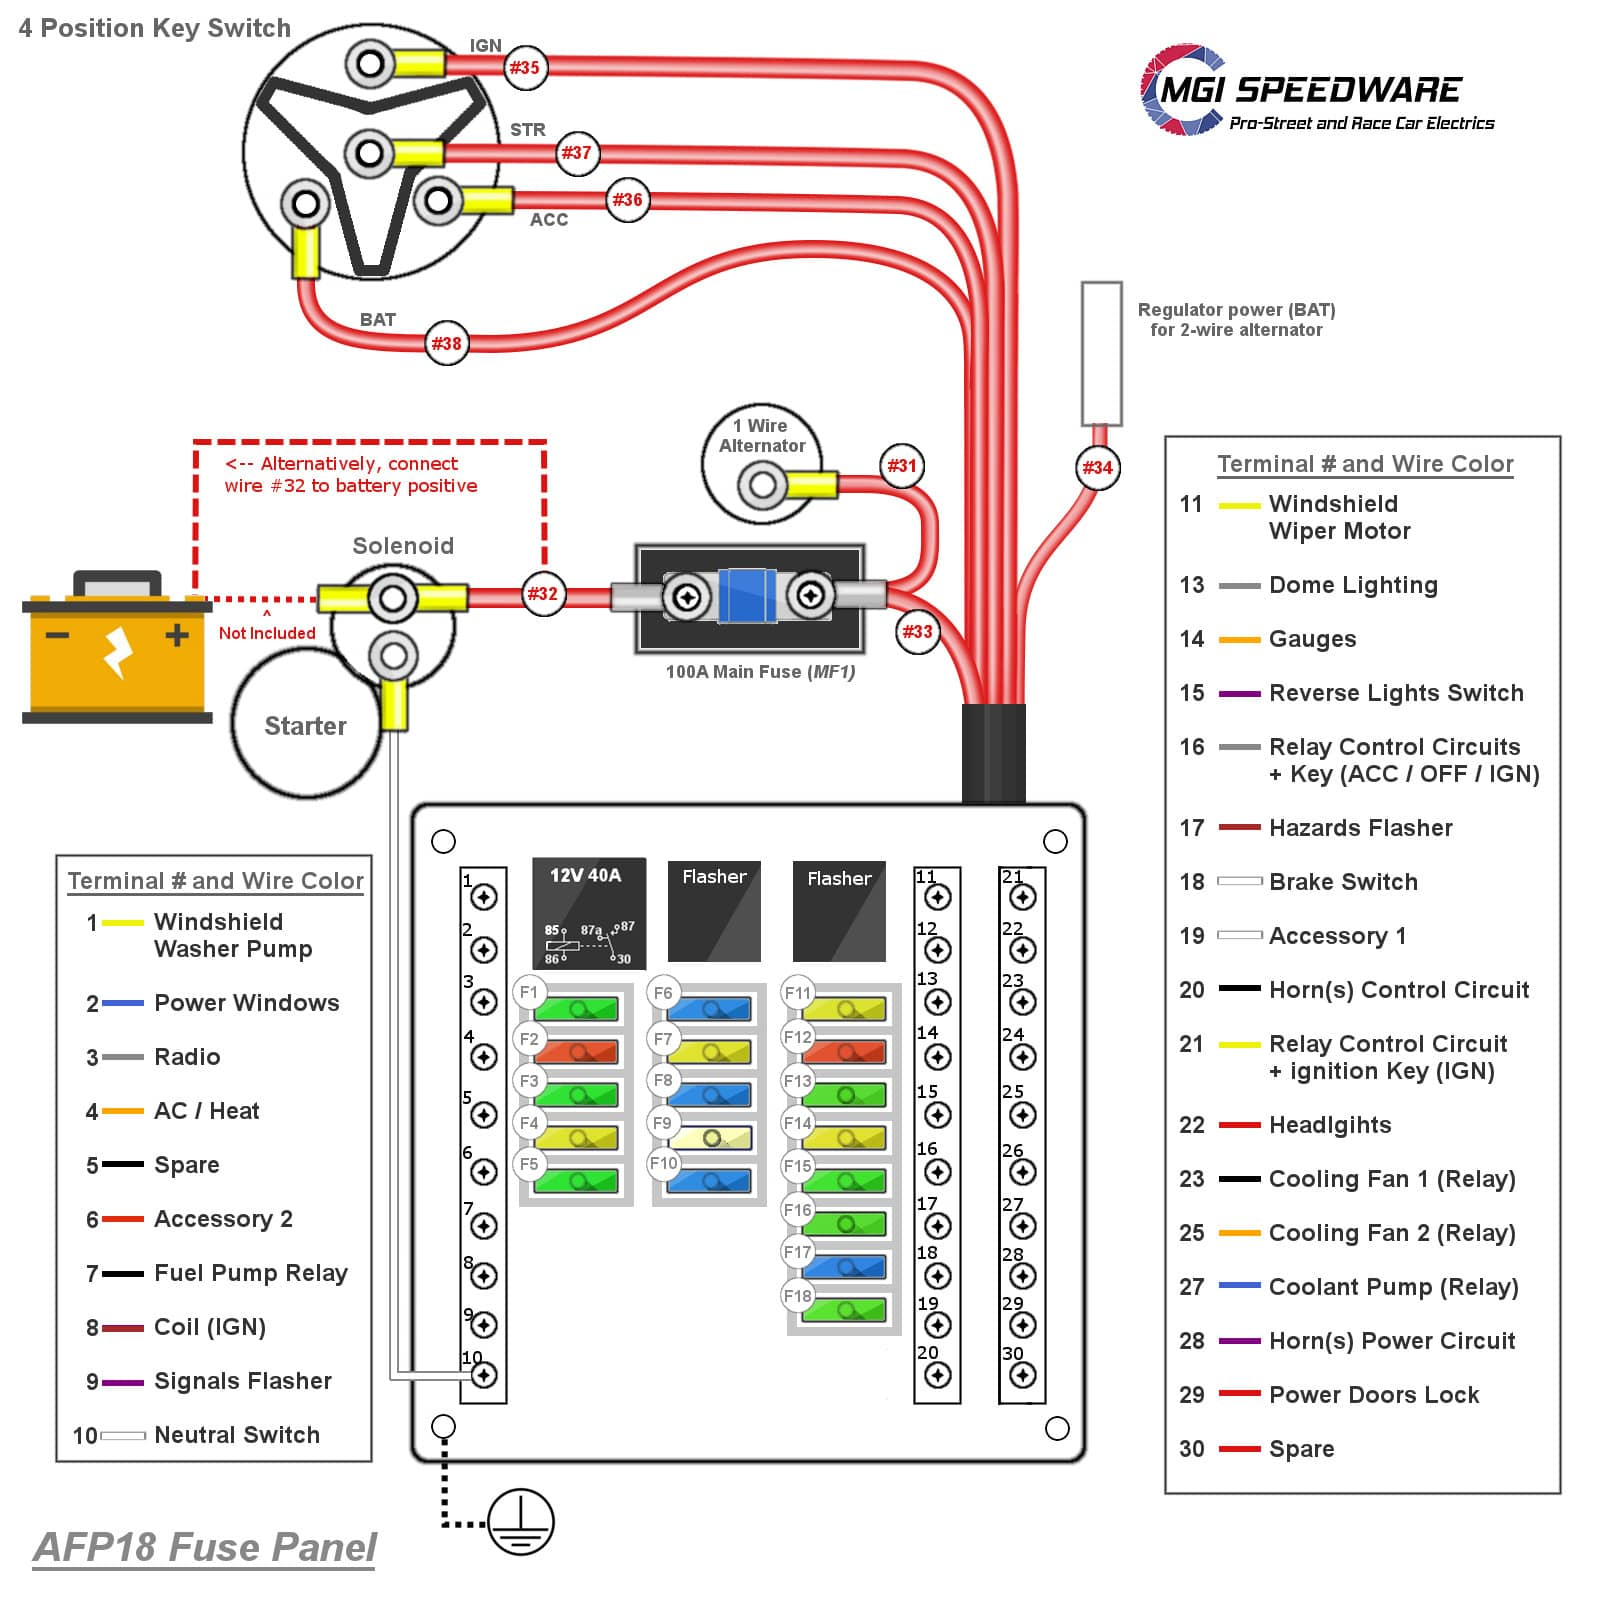 AFP18 Wiring Diagram